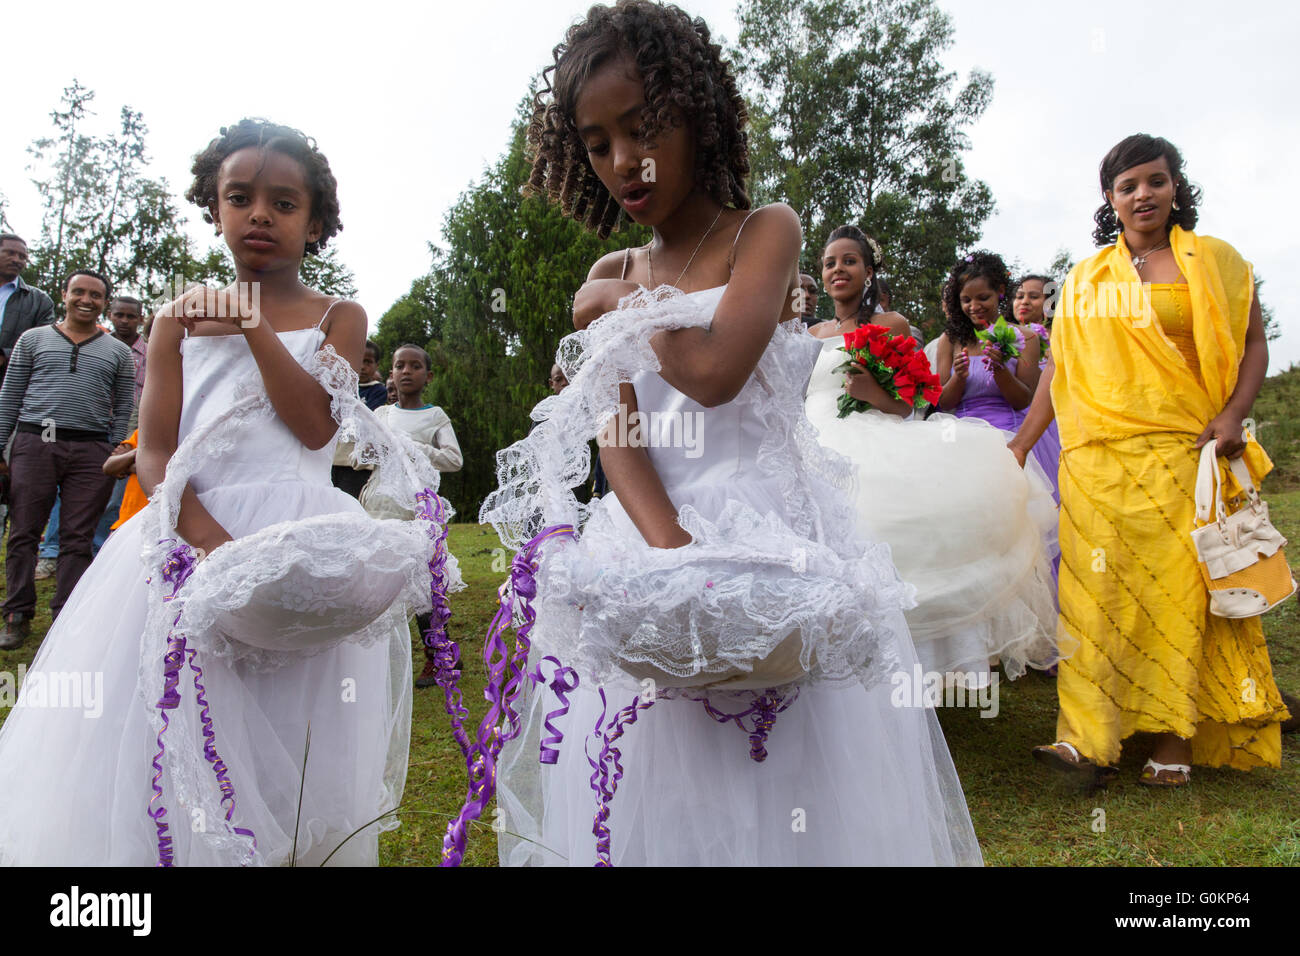 Gibi village, Gurage, Ethiopia, 6th October 2013 Bridesmaids at a wedding -  today is auspicious for marriages. - Stock Image